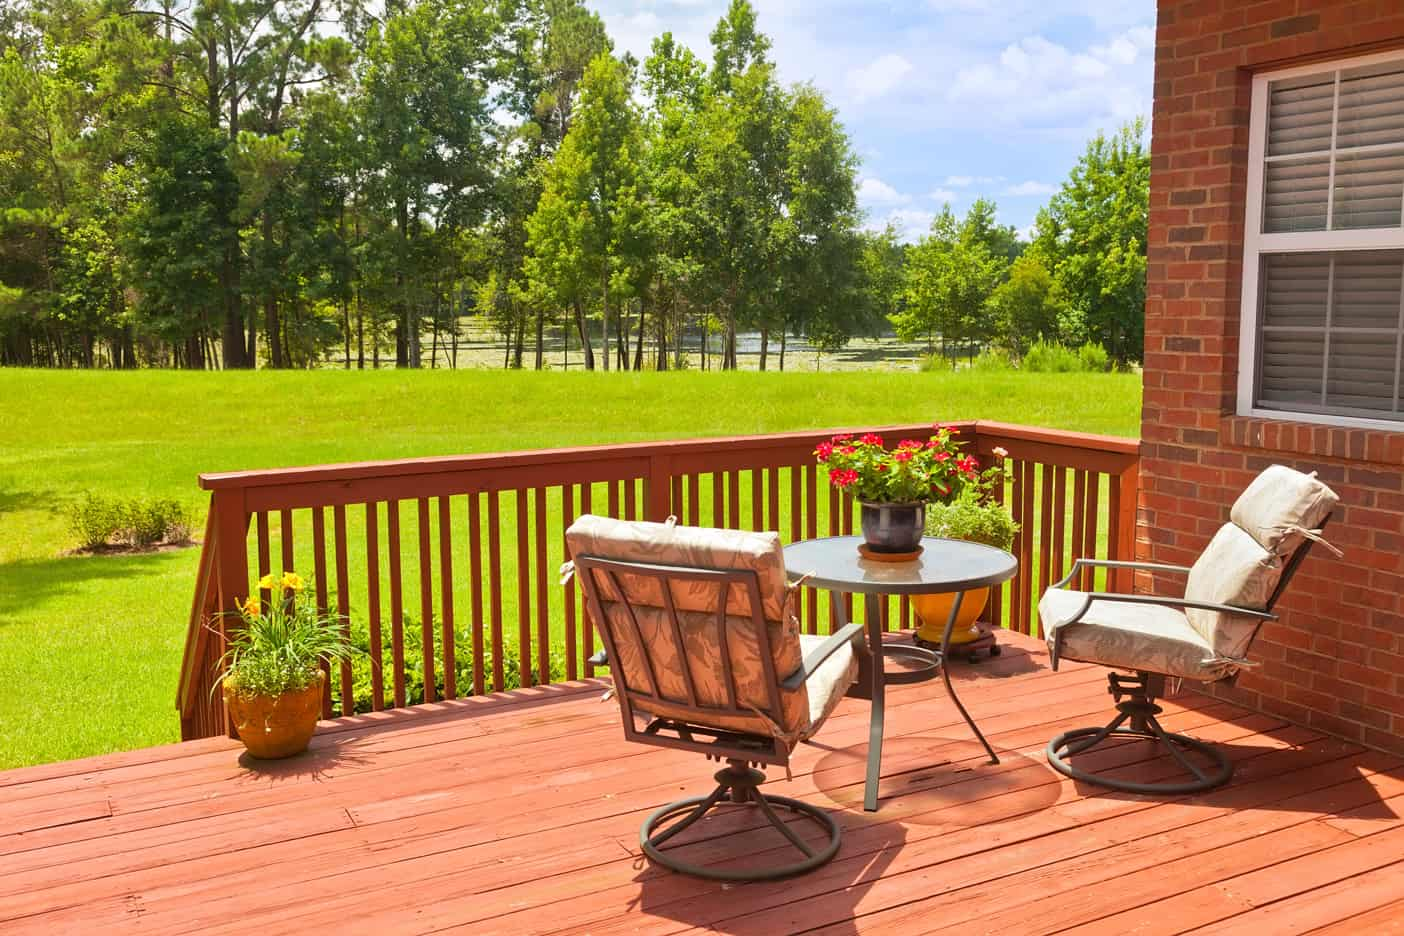 redwood deck in backyard : Liberty Fence and Deck